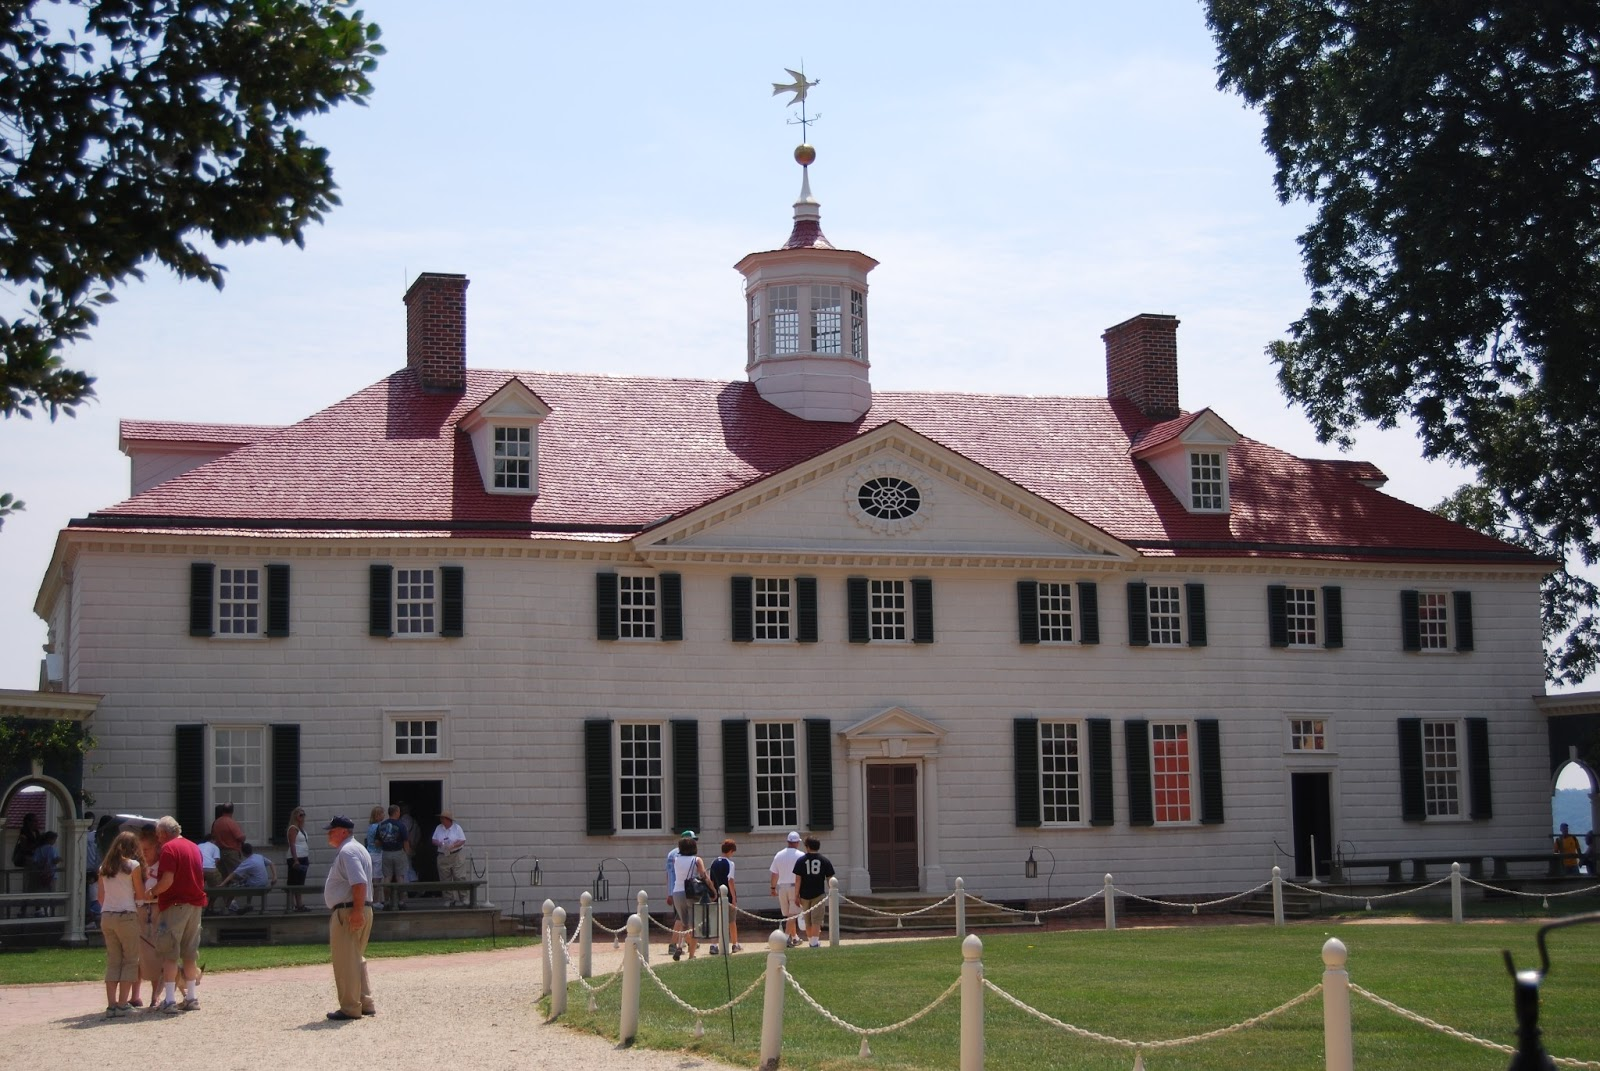 Mount Vernon (KY) United States  city photos gallery : the United States of America, George Washington, resided here in Mount ...